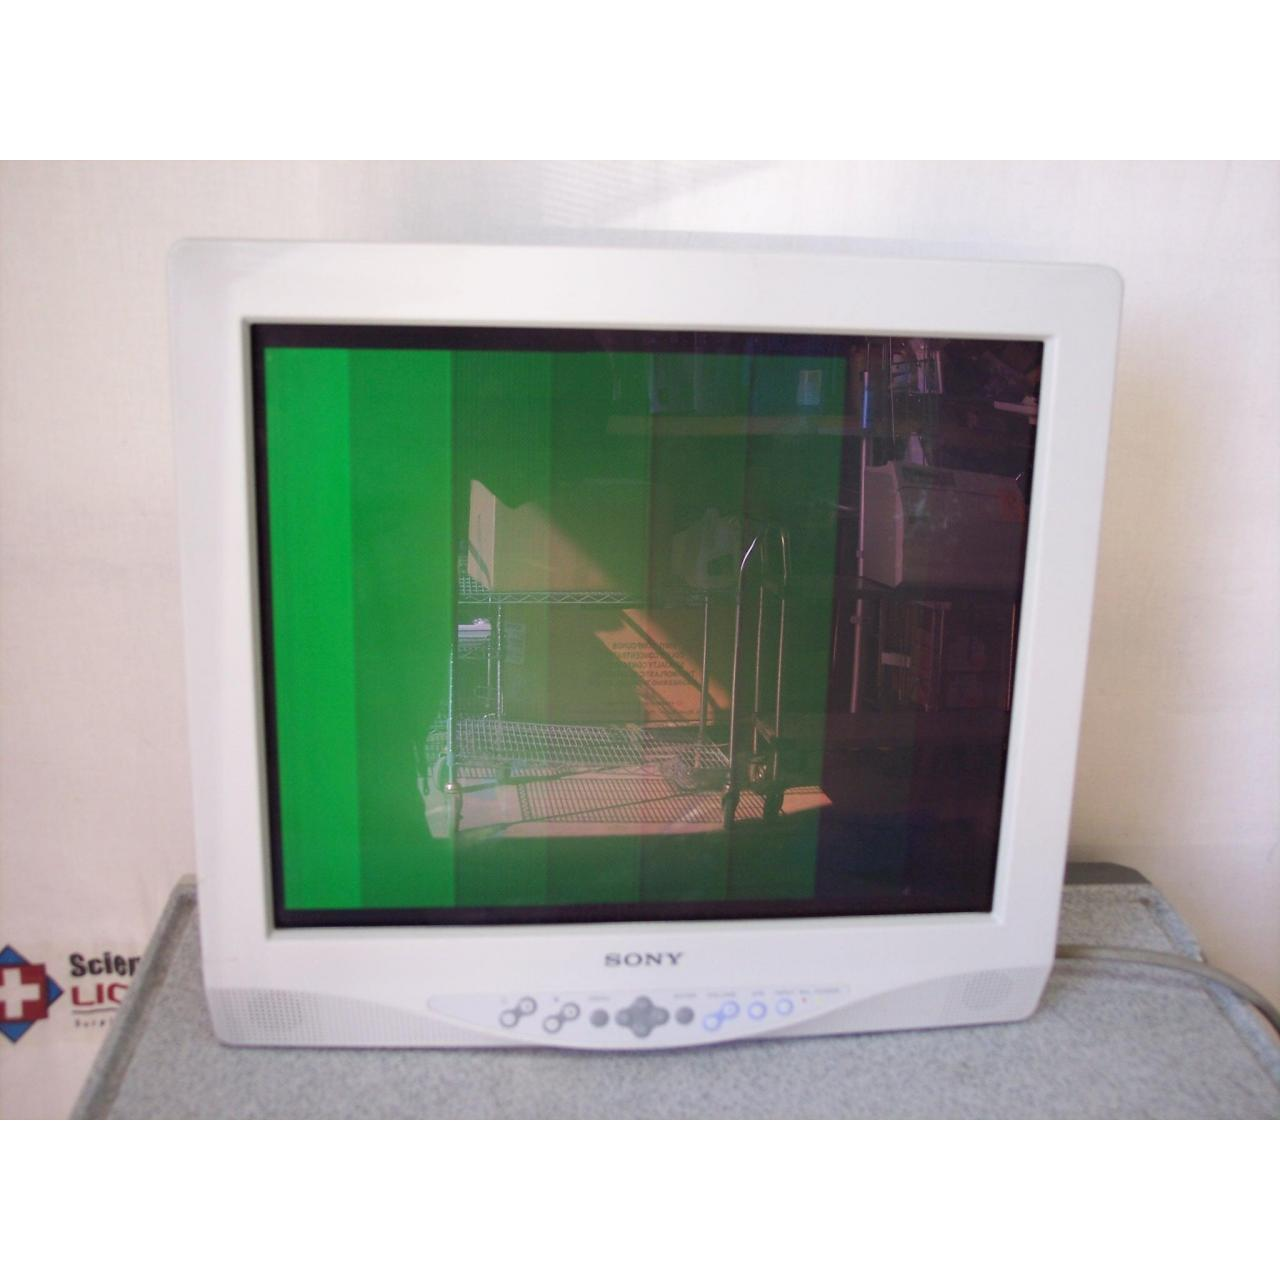 Sony LMD-181MD/CV LCD Monitor